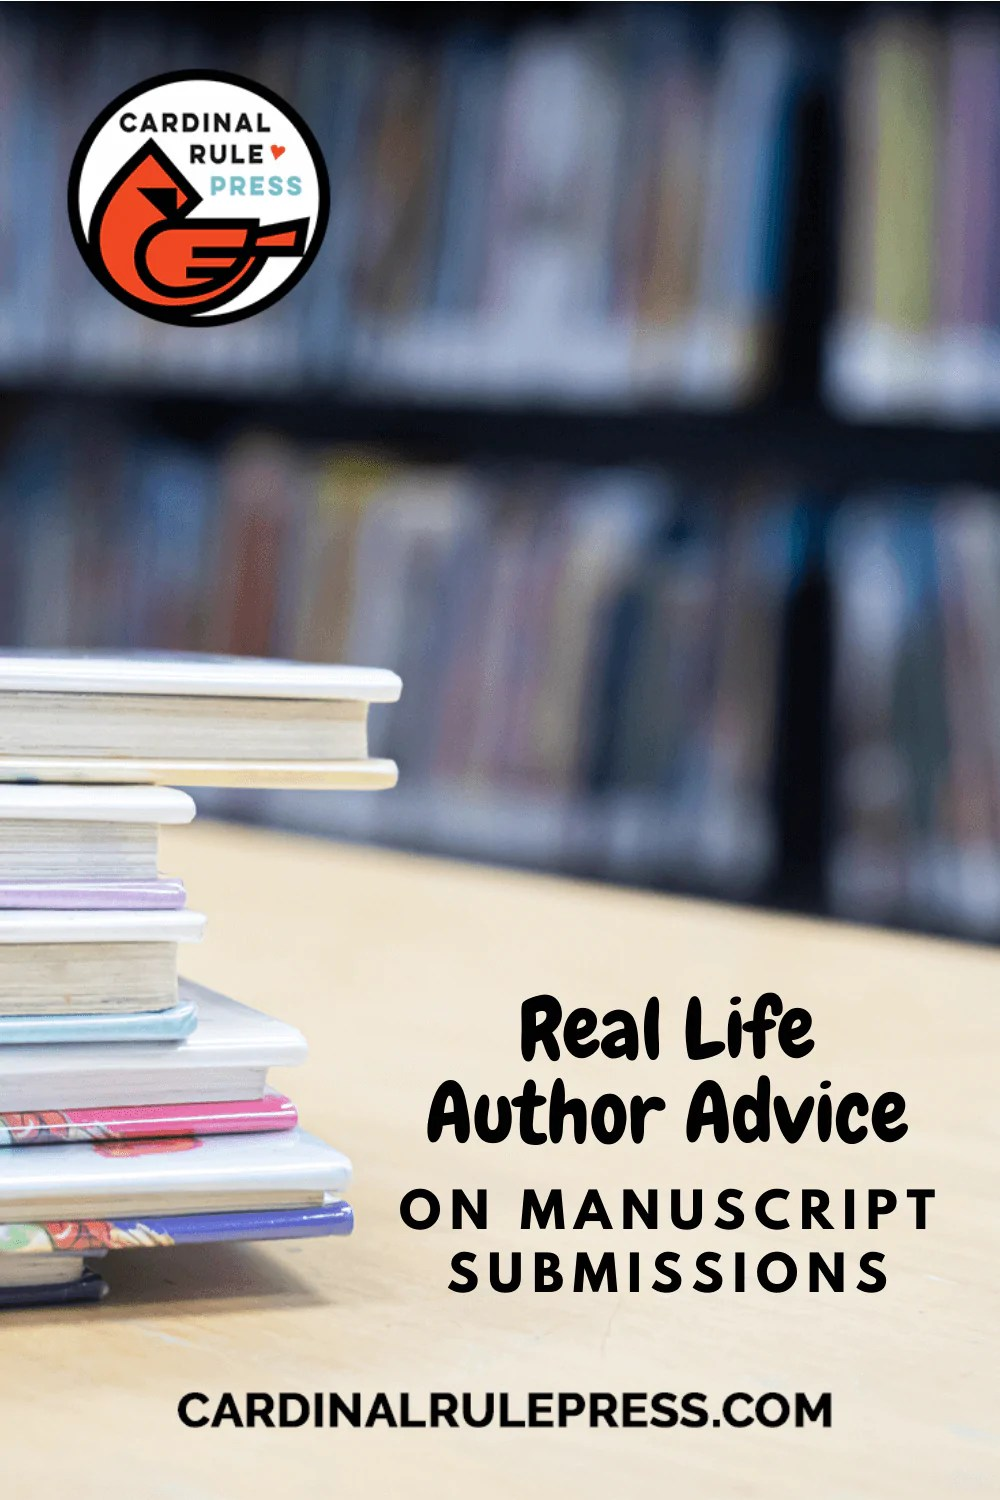 Real Life Author Advice On Manuscript Submissions